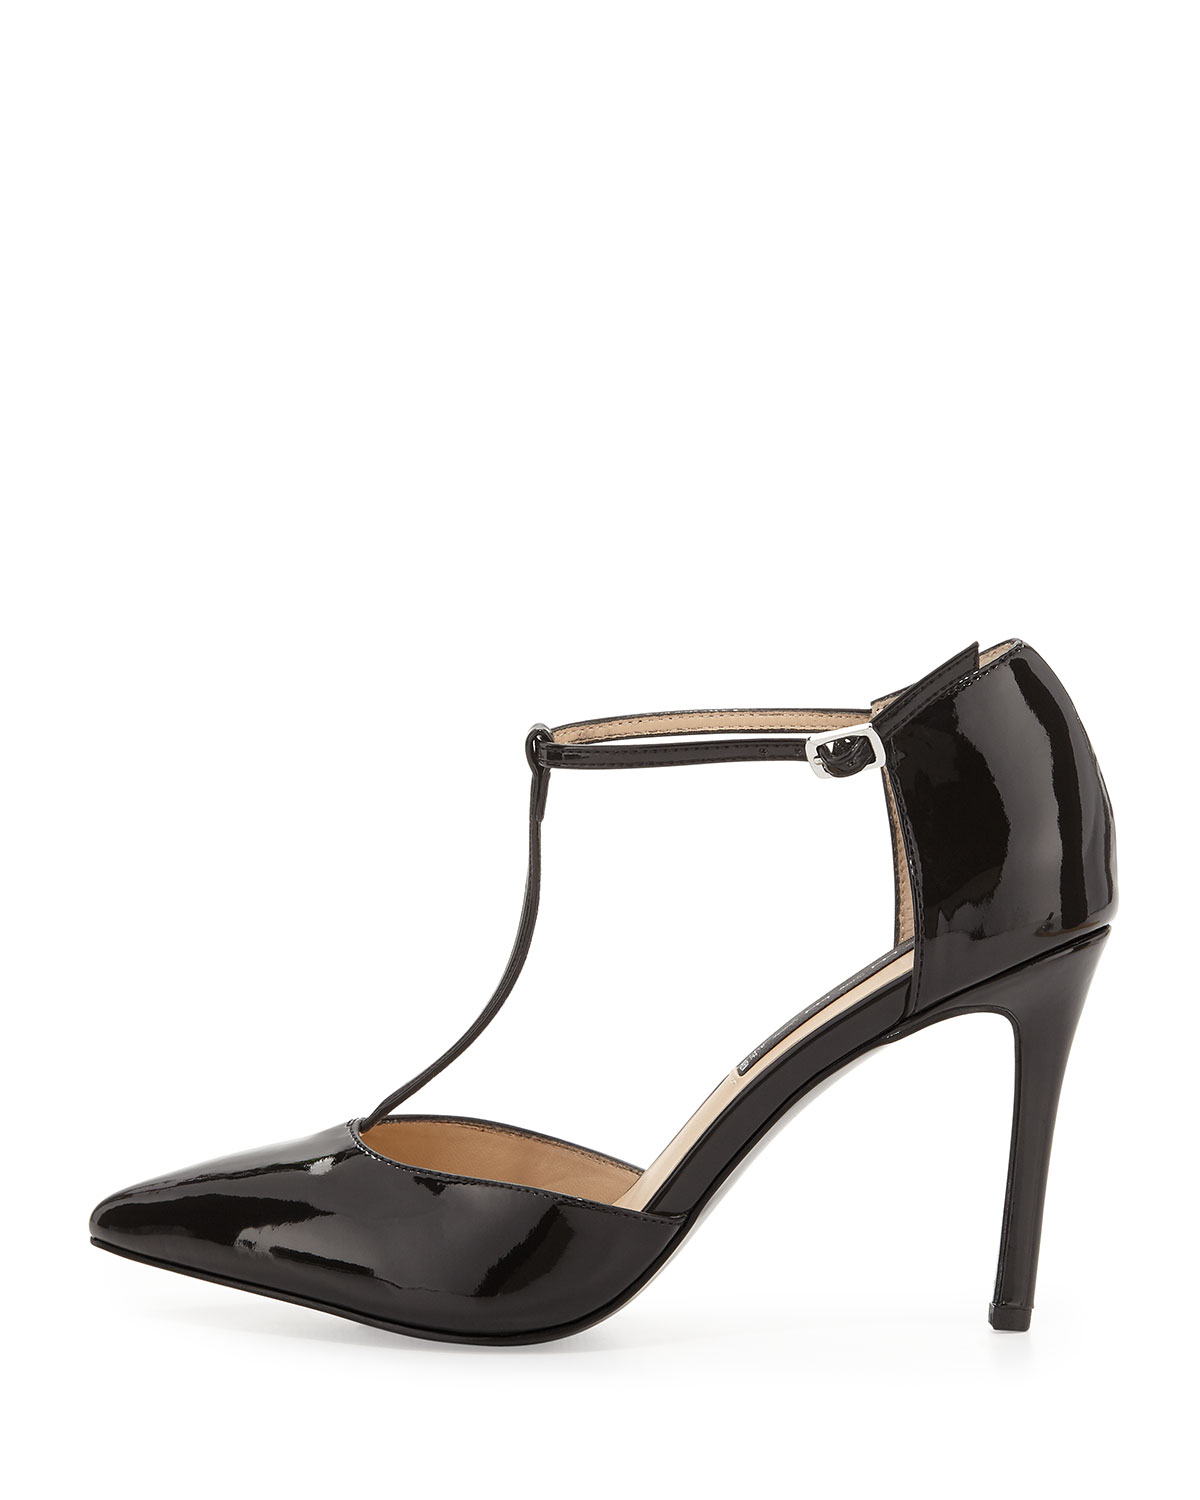 e1f0a6402040 Lyst - Steven by Steve Madden Amanda Patent Leather T-strap Pump in ...